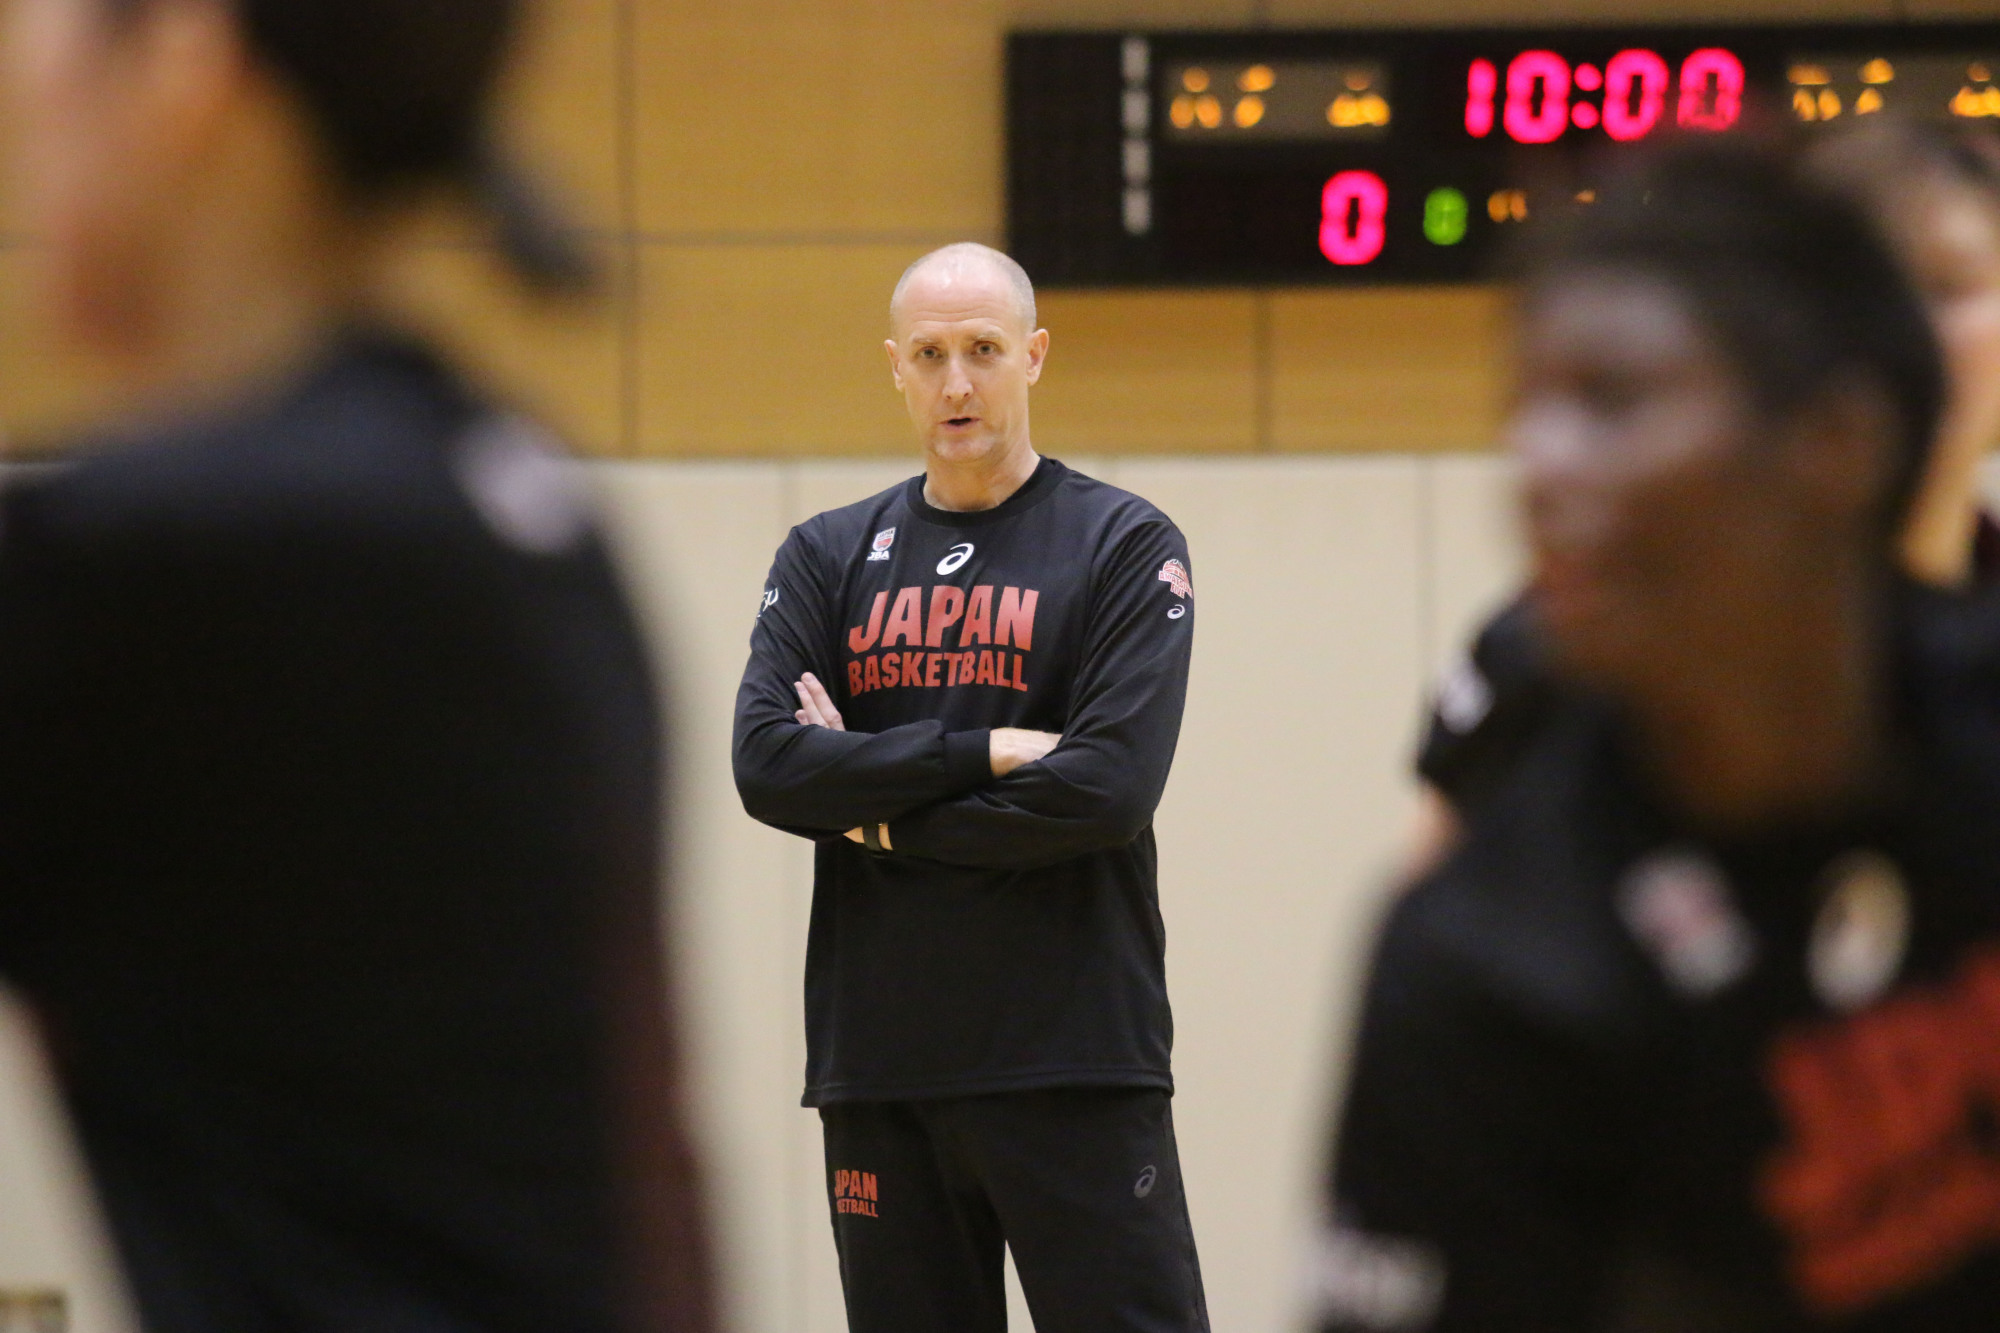 Japan women's basketball coach Tom Hovasse watches his team practice at the National Training Center in Tokyo earlier this week. | KAZ NAGATSUKA